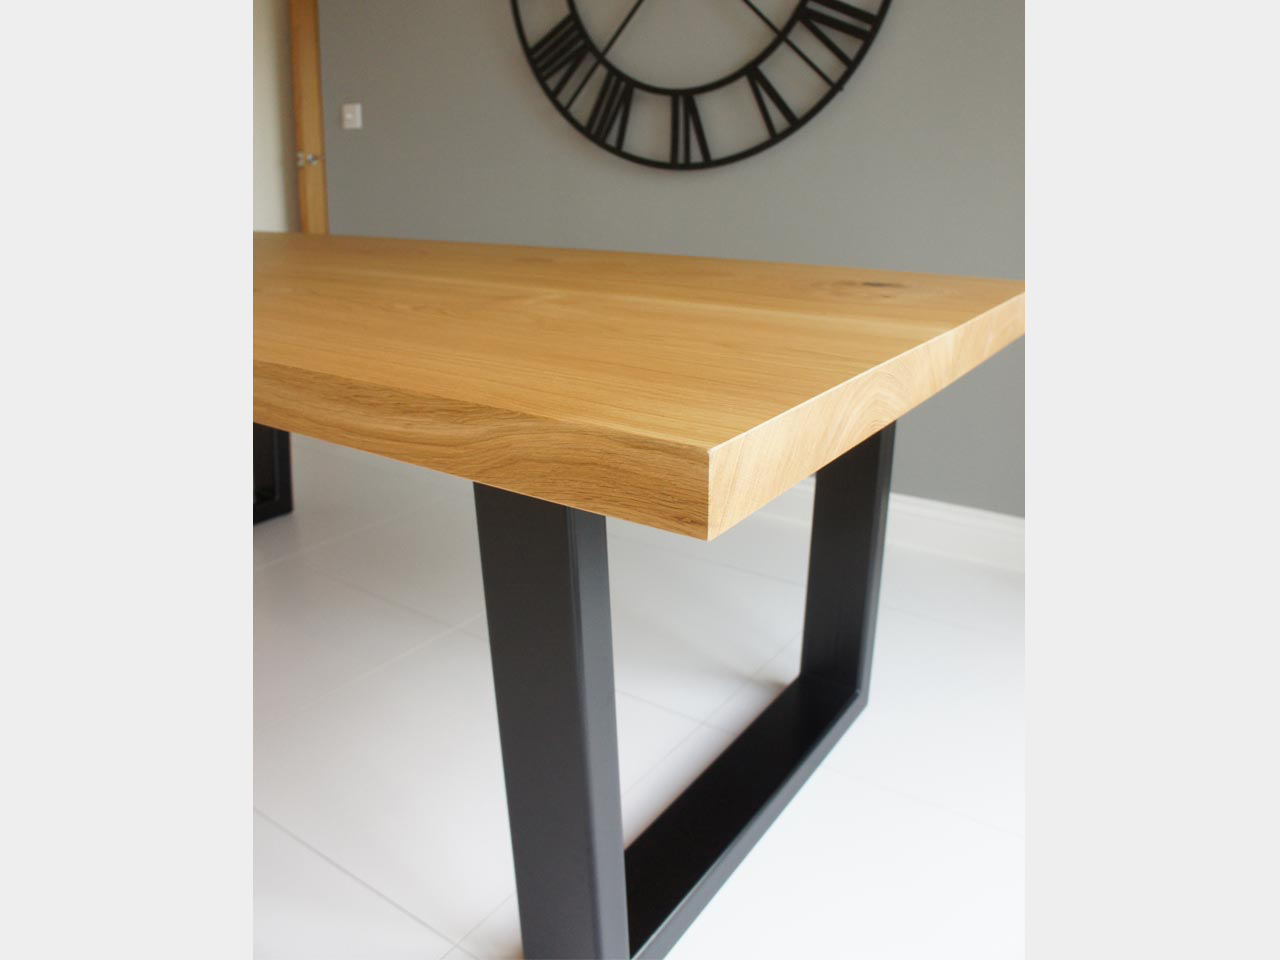 abacus-tables-project-836-pic-6